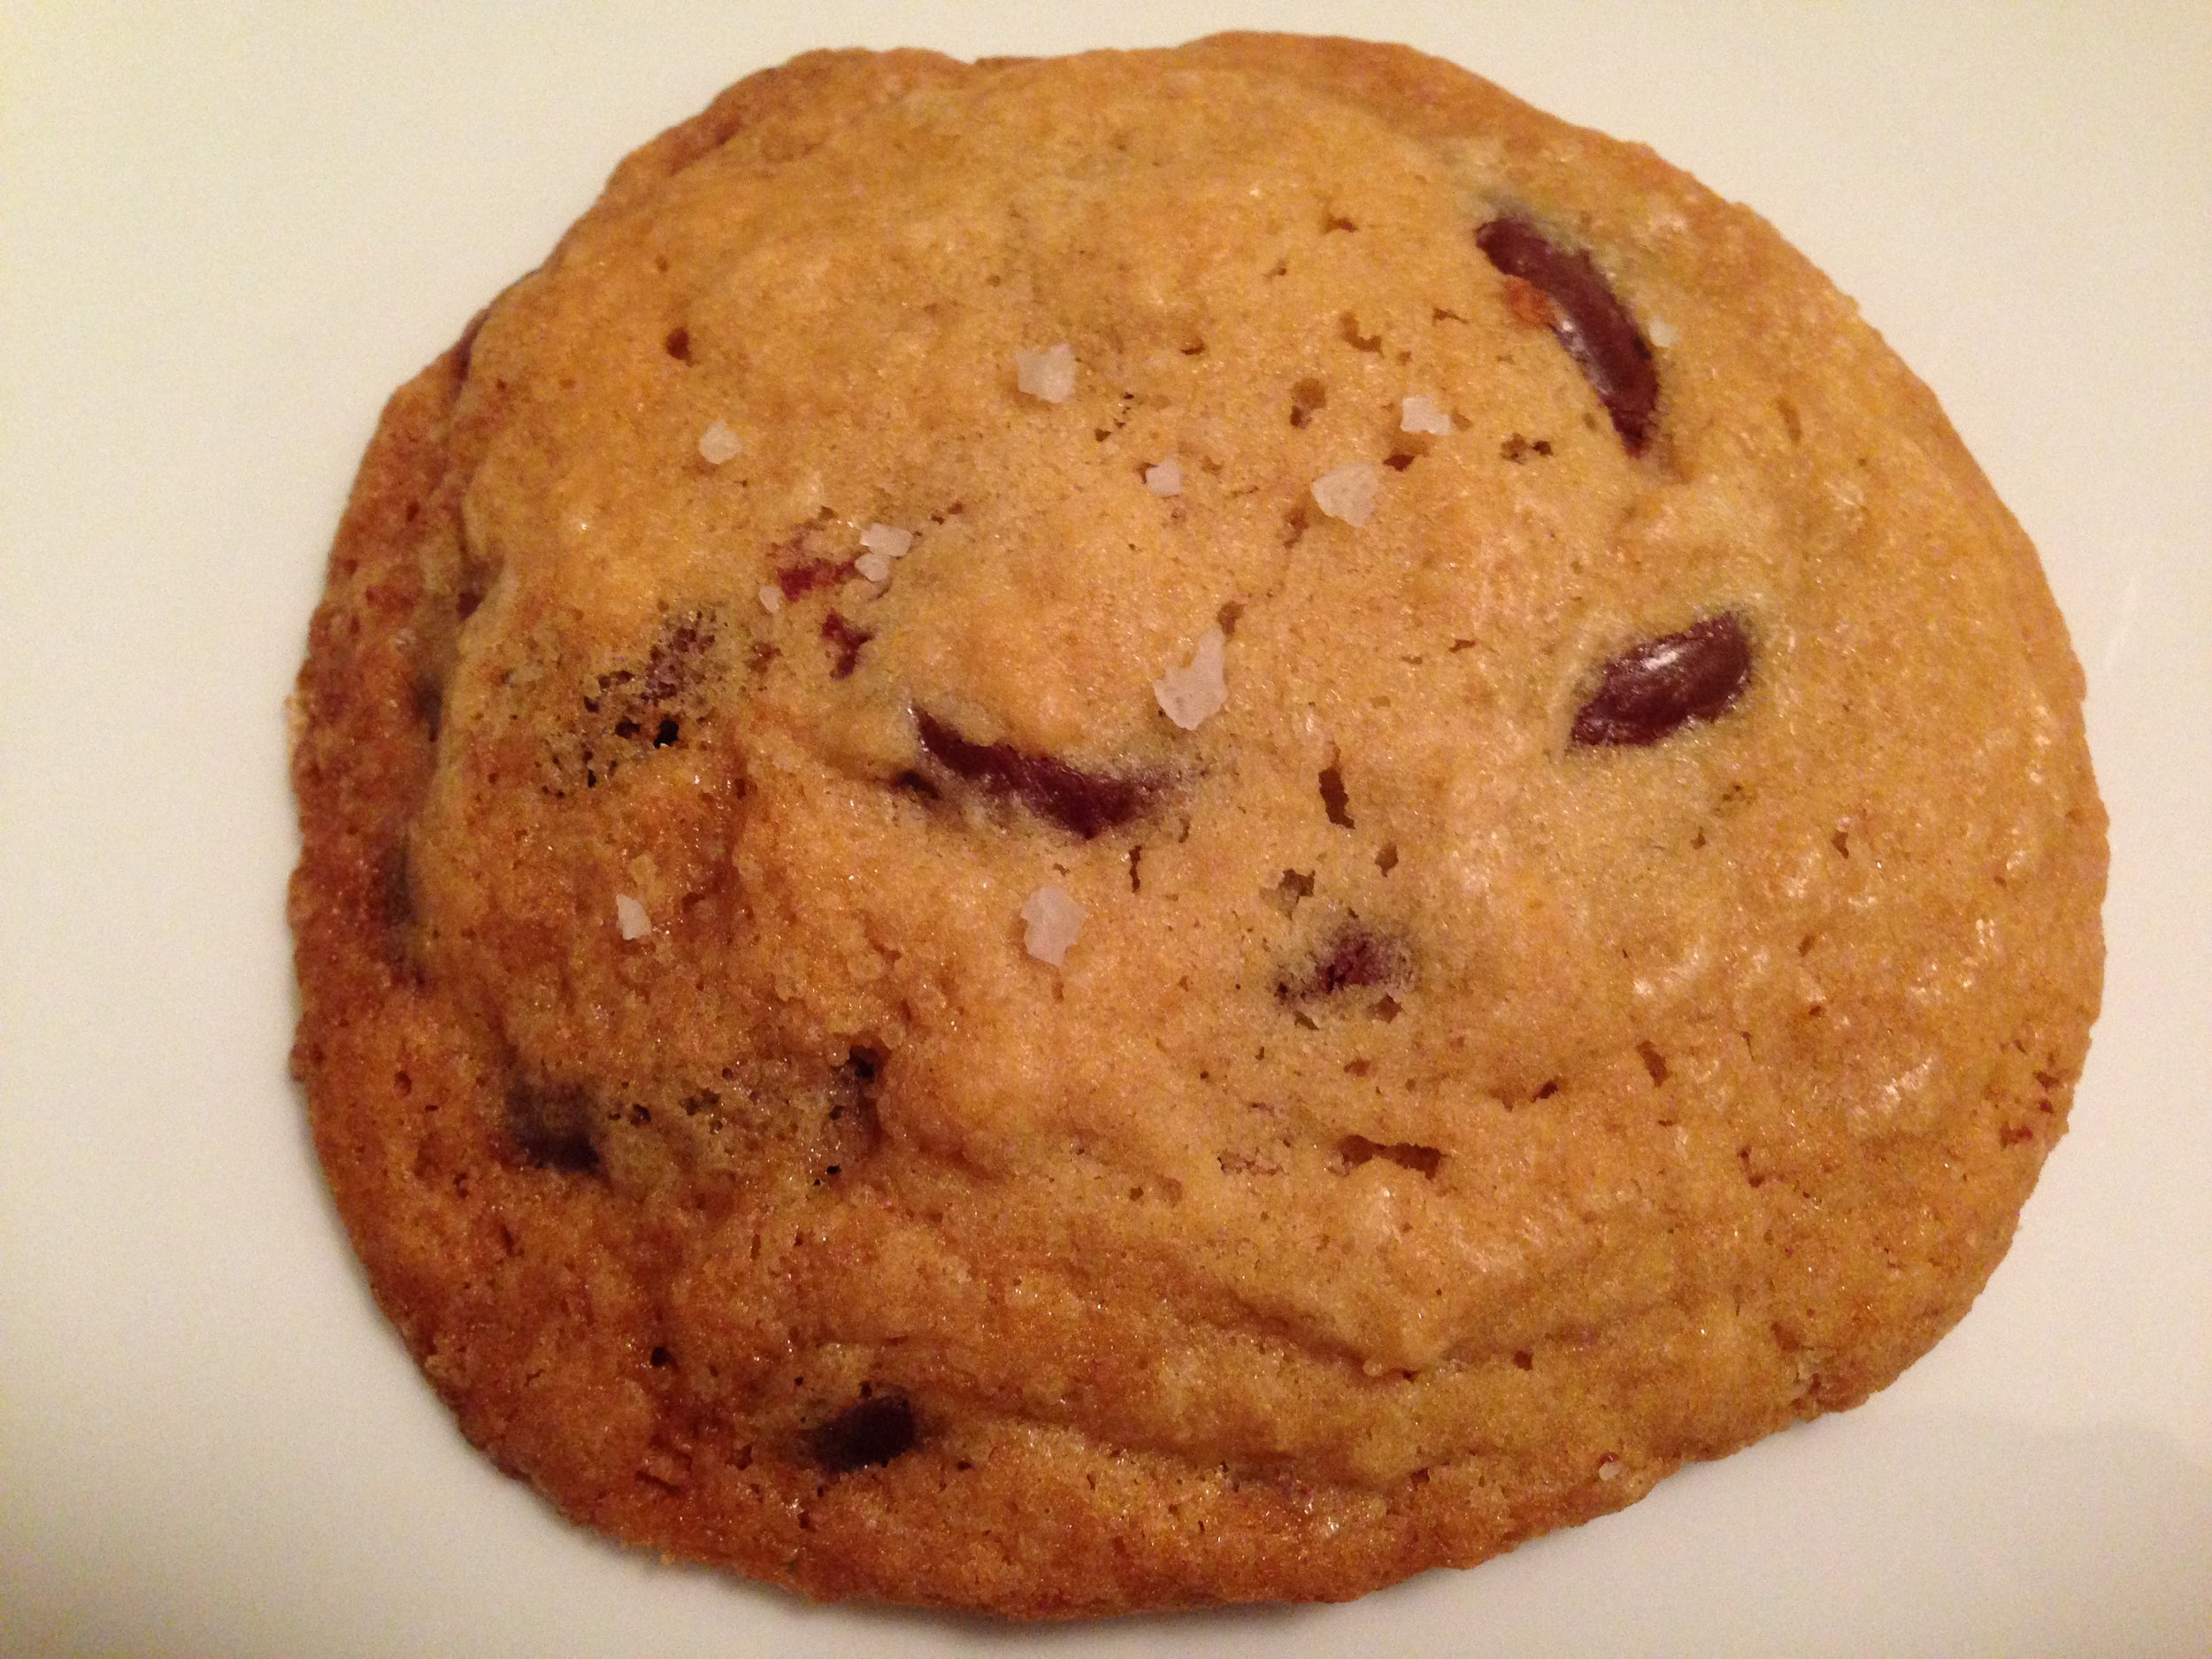 I am in love with this Chocolate Chip Cookie.